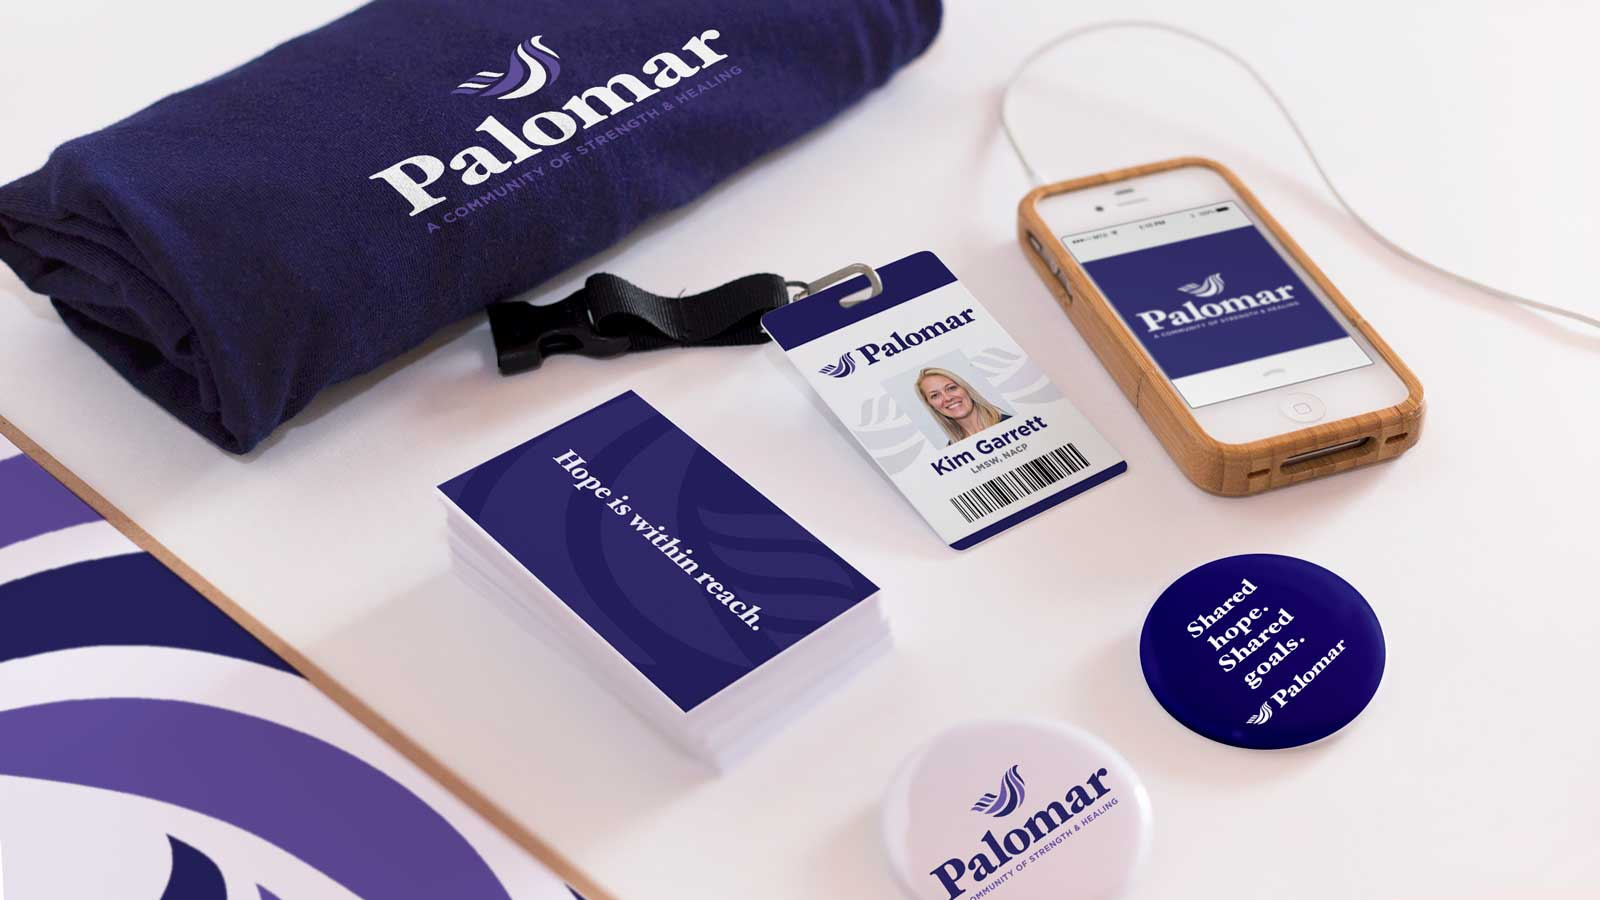 New name and logo for Palomar, Oklahoma City's family justice center